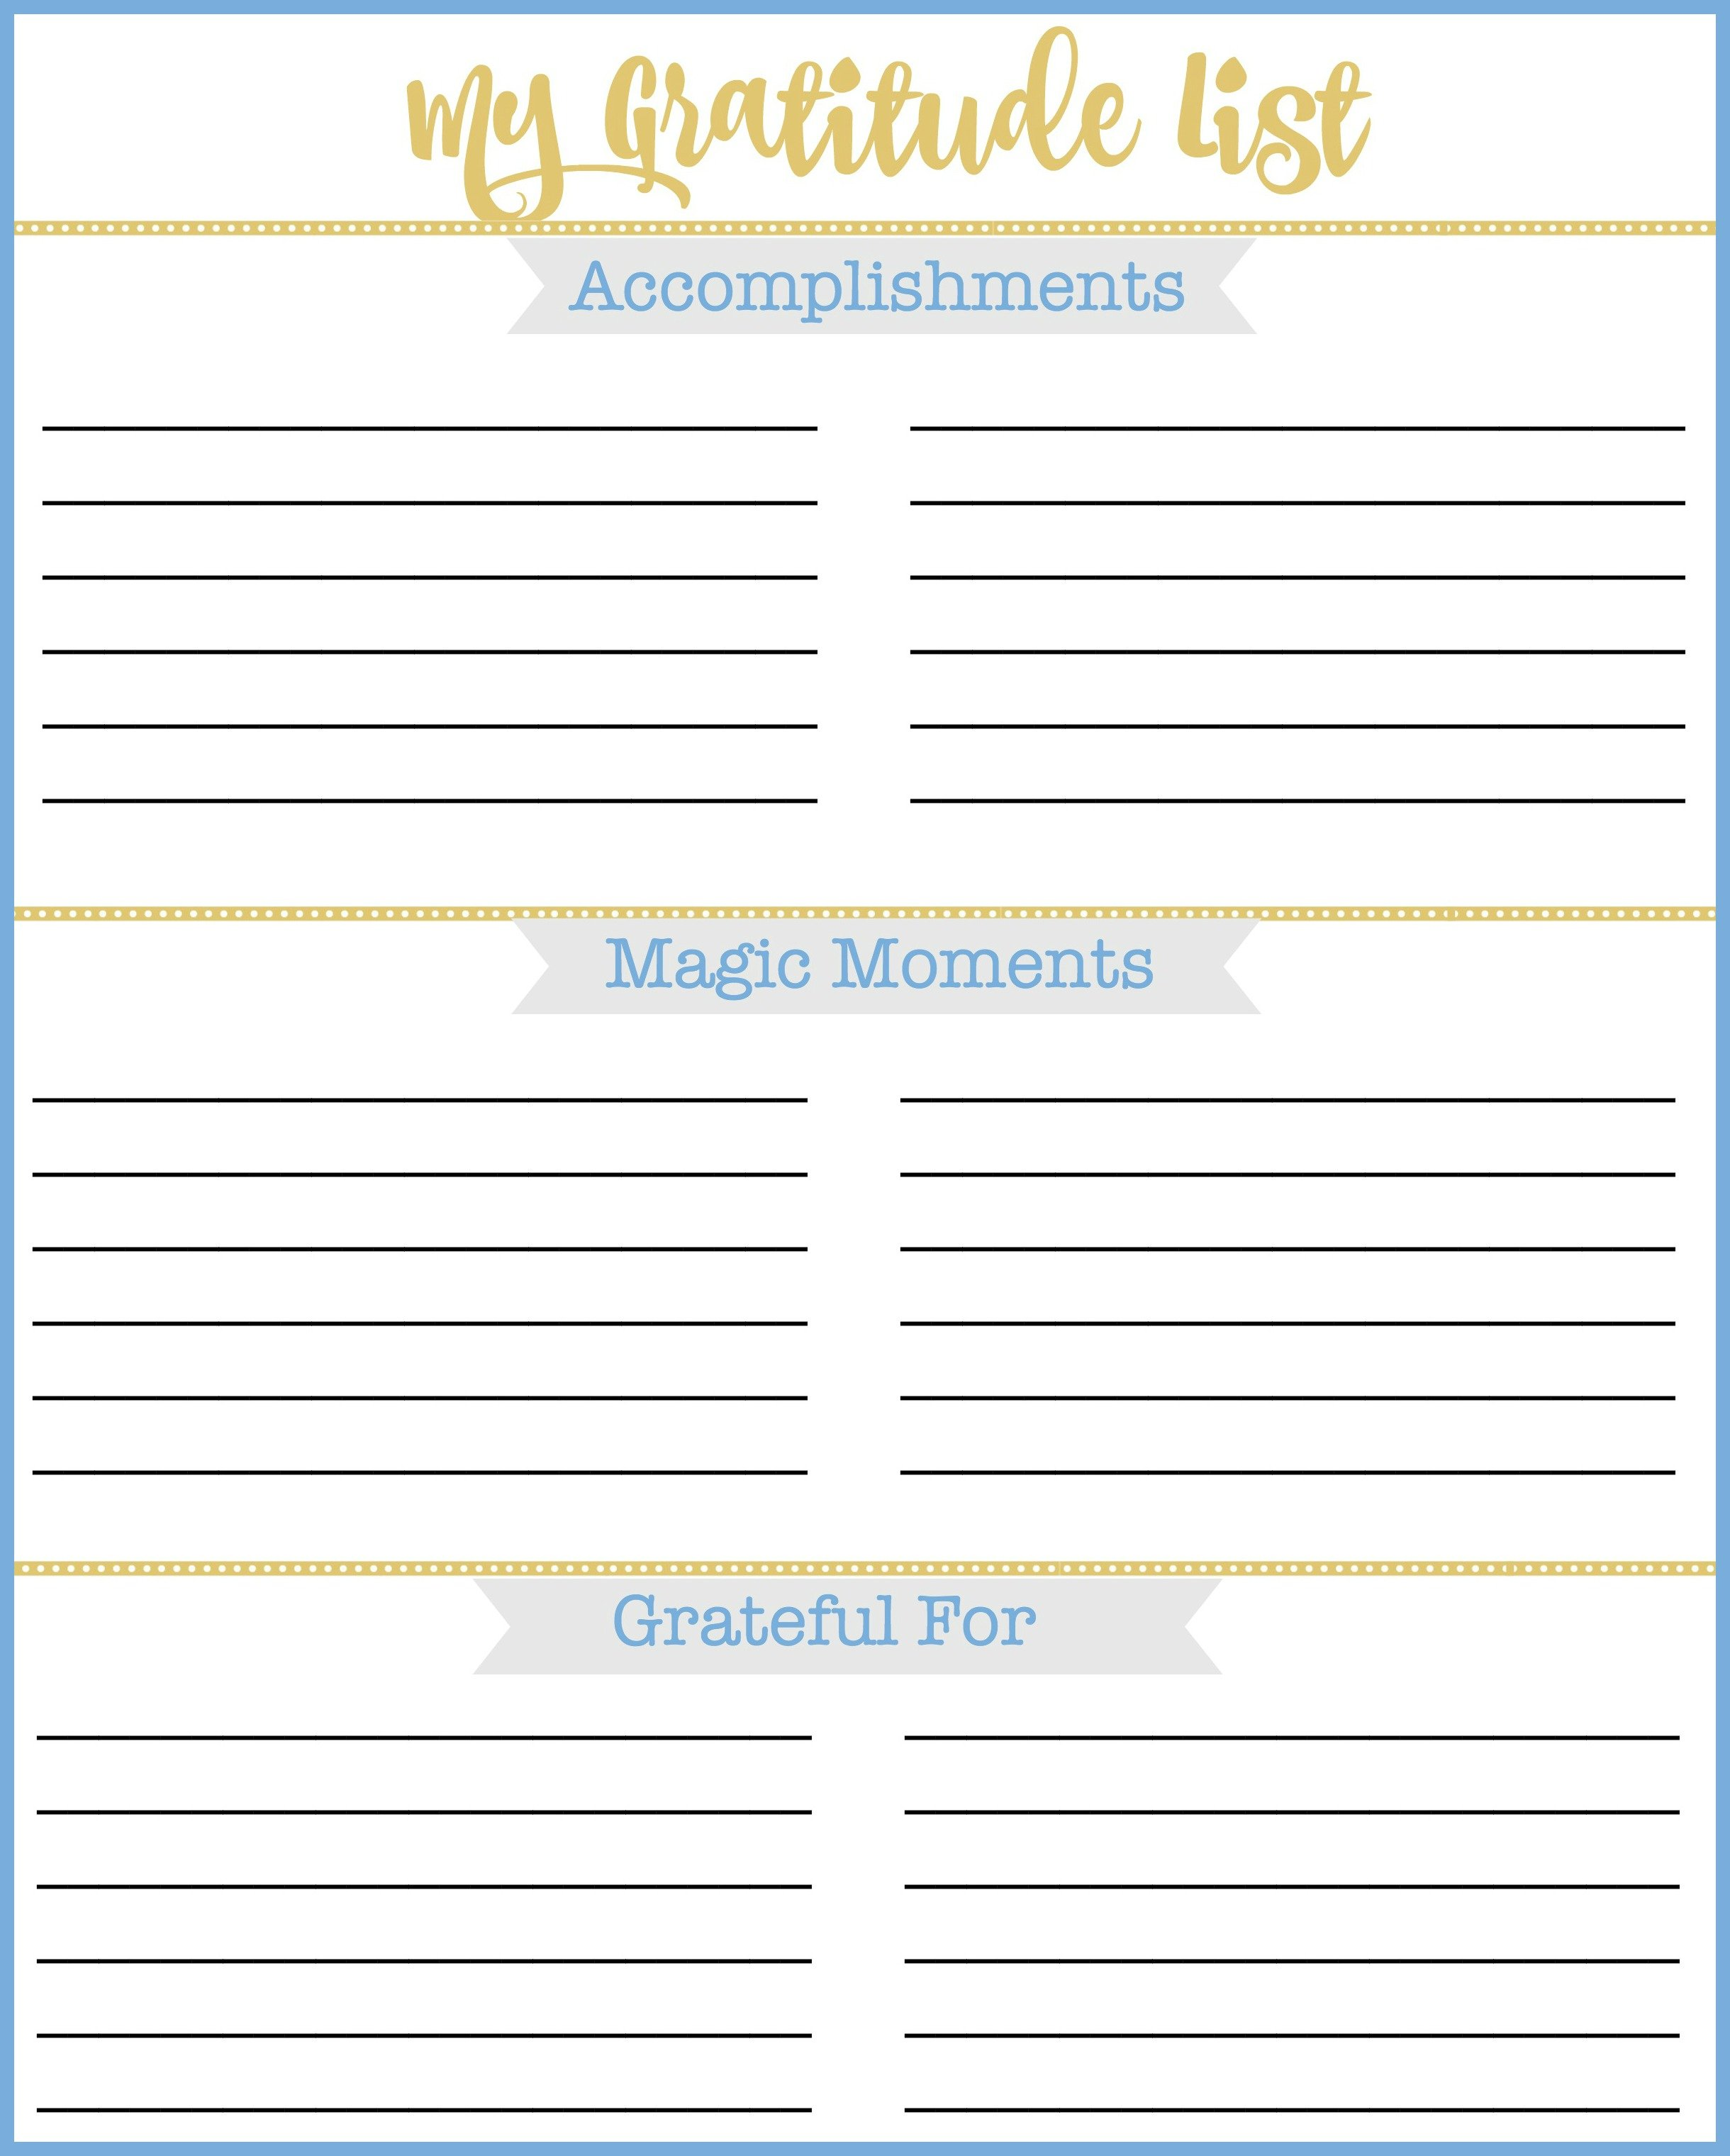 Printables Gratitude List Worksheet free printable gratitude list to help you reflect on the past year d4642e337b801482342695 worksheet jpg